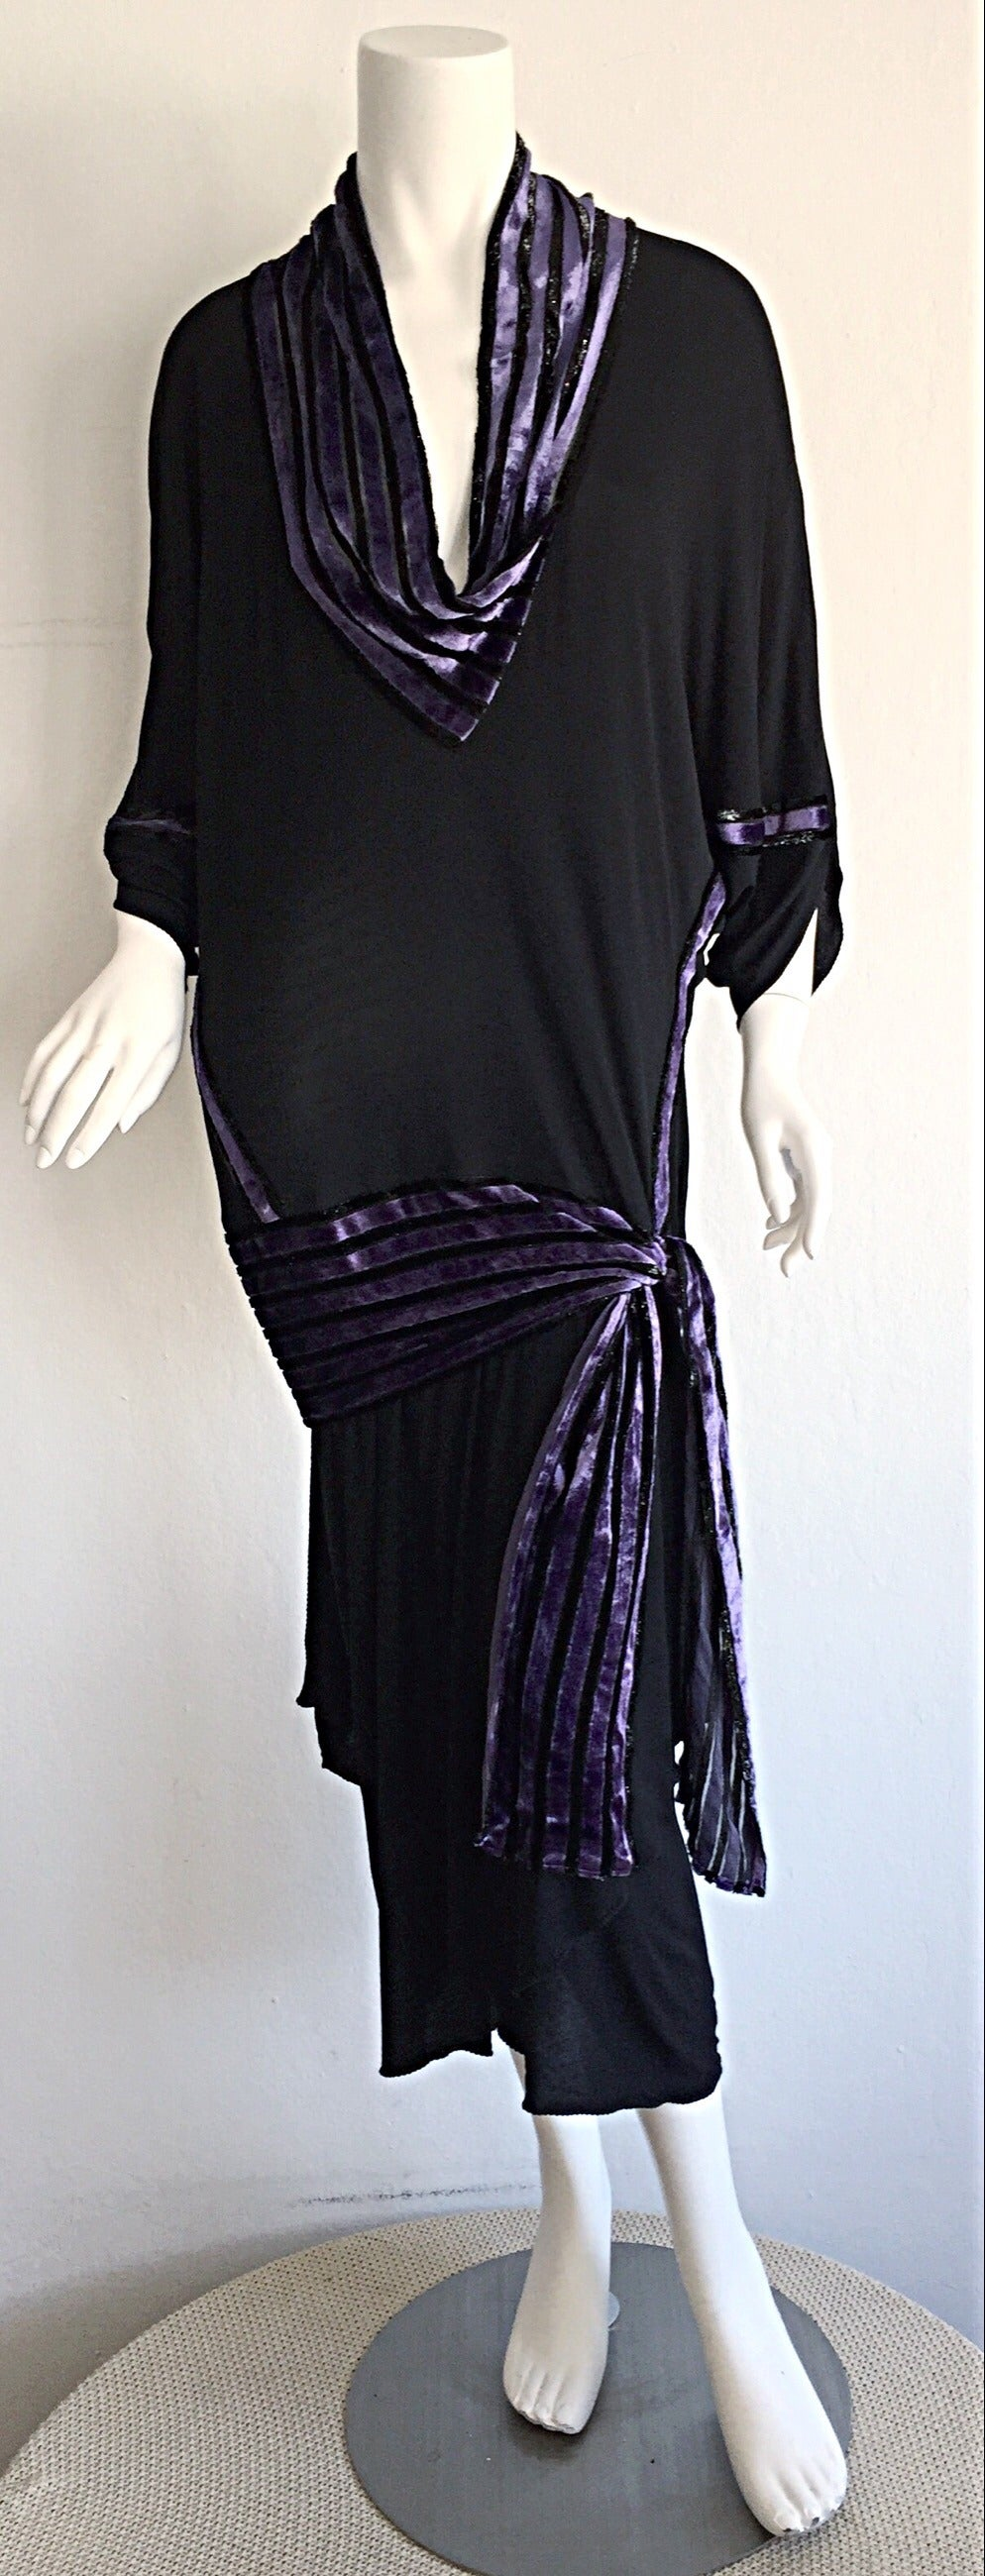 "Iconic Vintage Janice Wainwright Black Flapper Style "" Roaring 20s"" Jersey Dress 7"